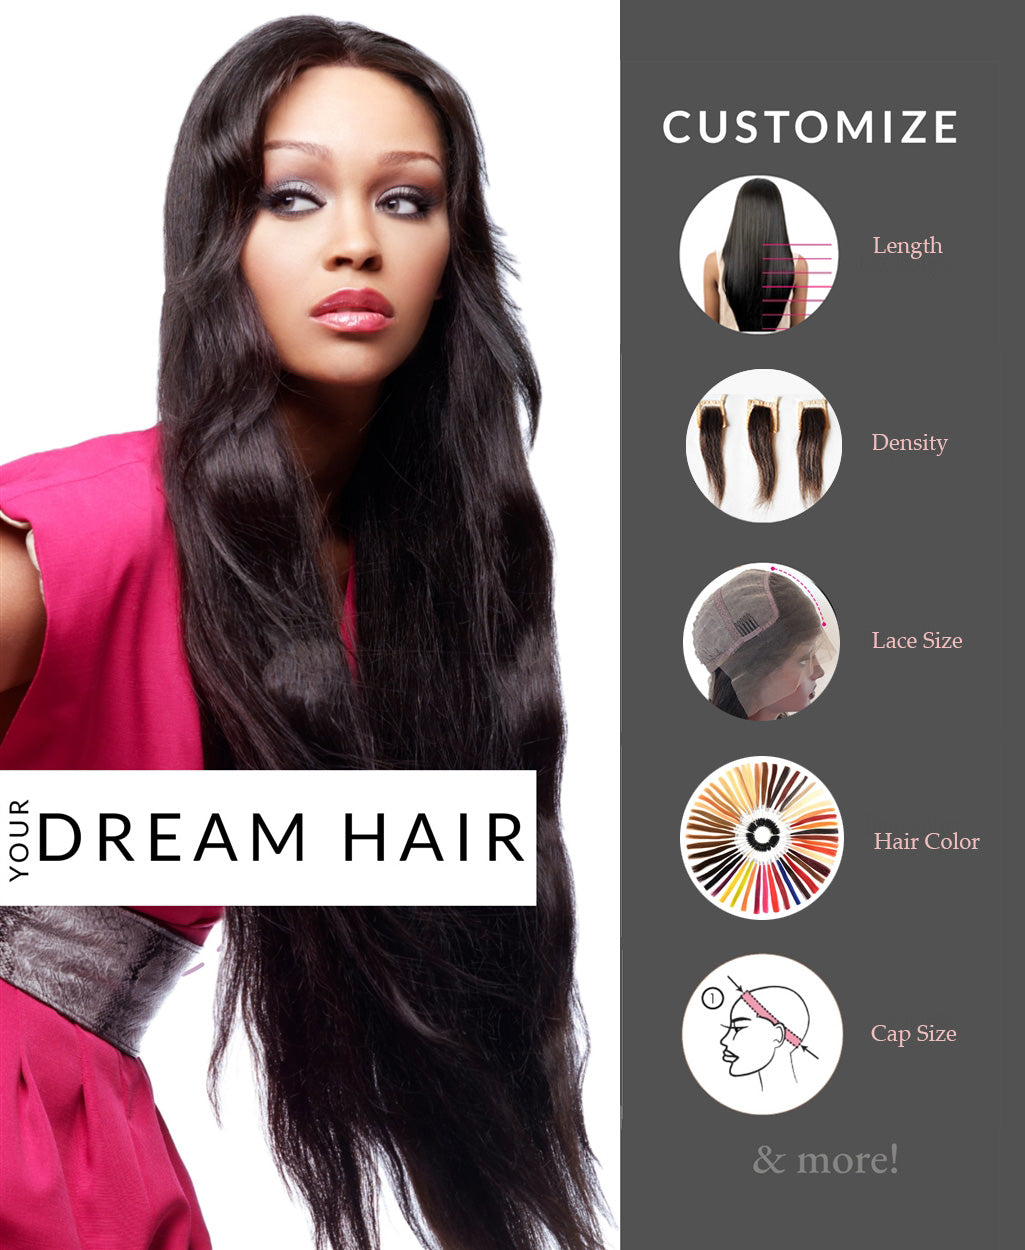 Customize Your Dream Hair with ReadyWig